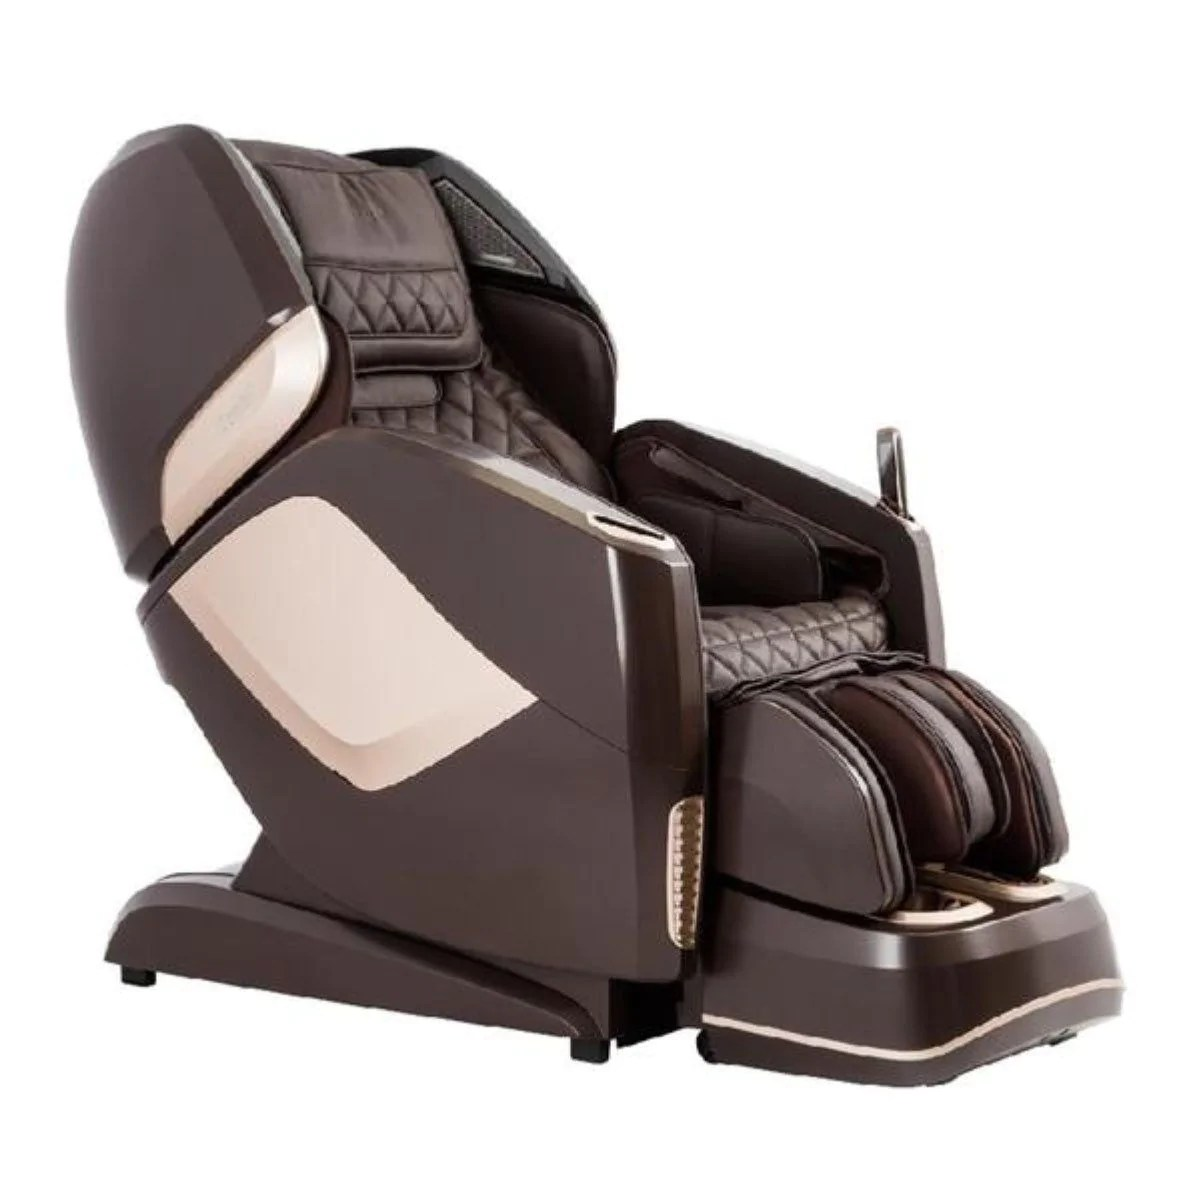 Massage Therapist Chair Osaki Os 4d Pro Maestro Massage Chair Lowest Price Guarantee